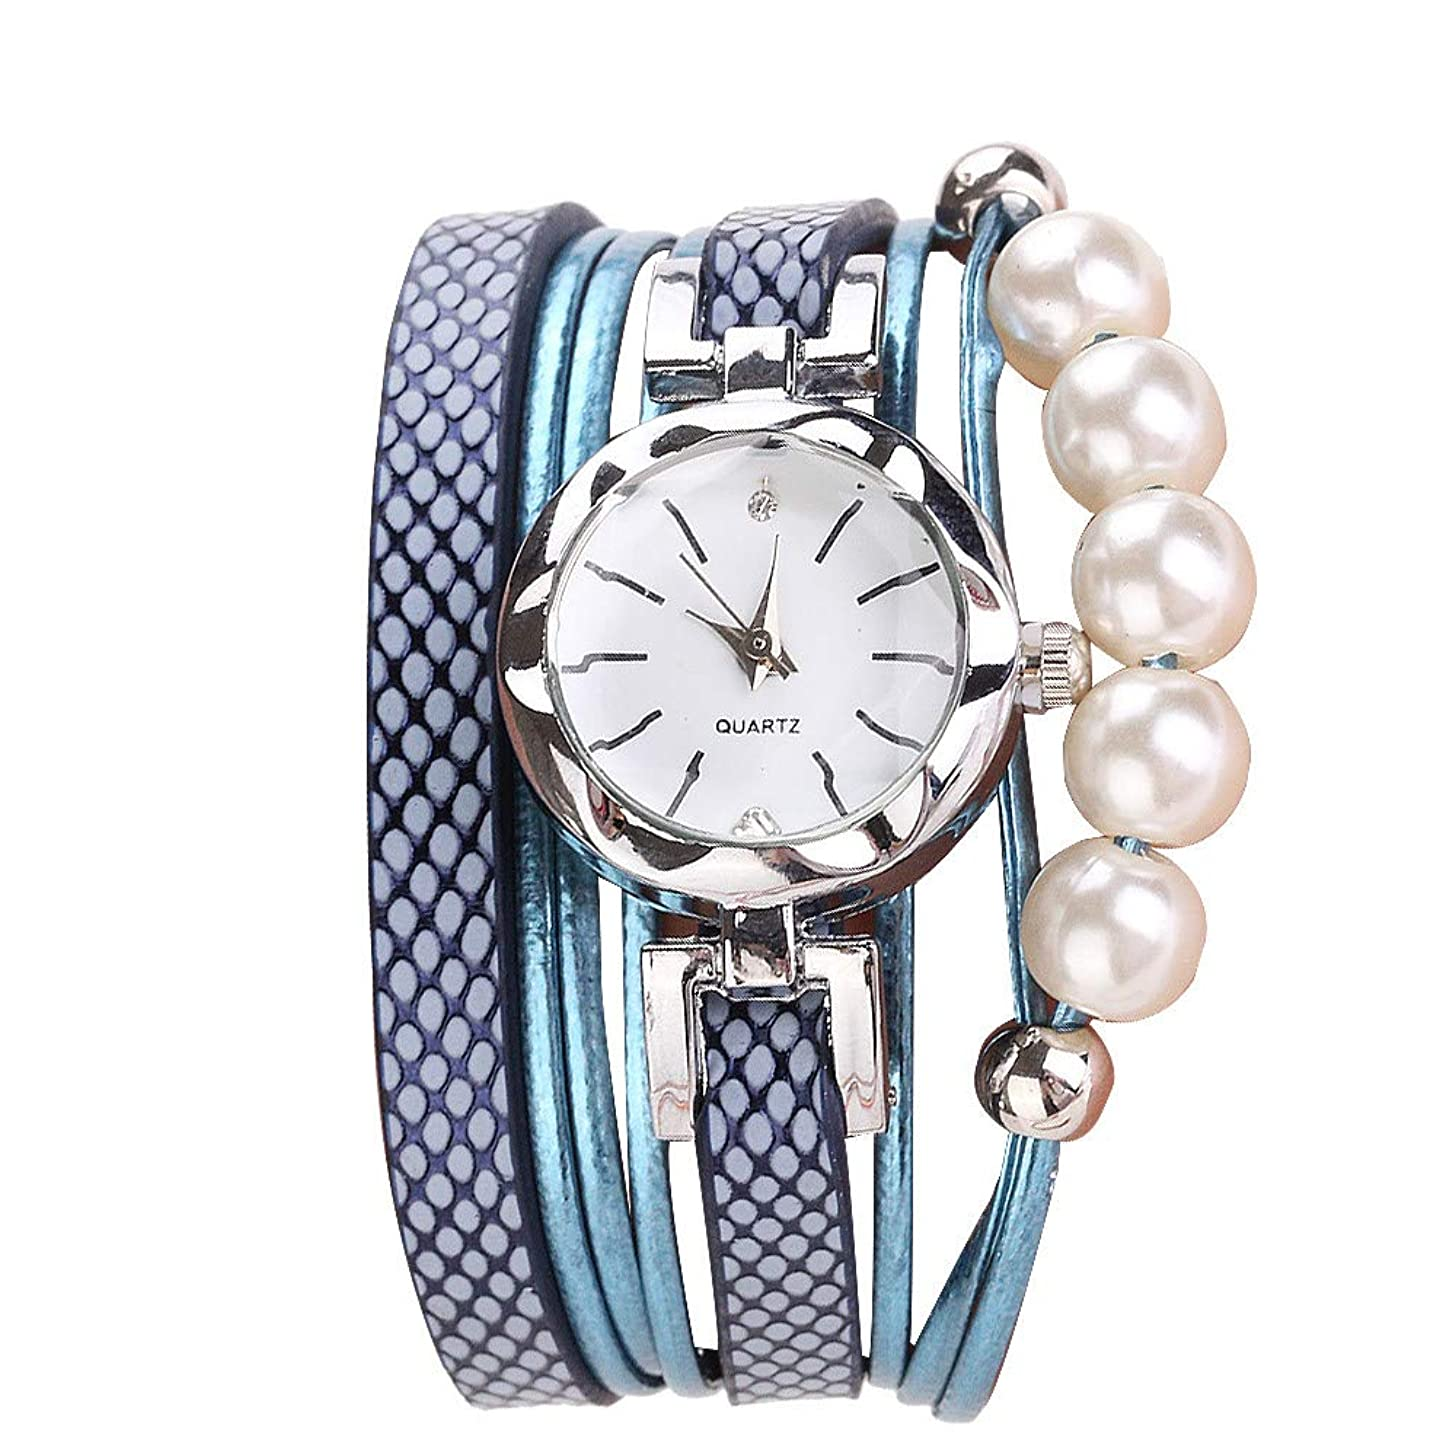 Fudule Women Watches, Bracelet Watches for Women Vintage Wristwatches Round Dial Case Dress Watch for Girls on Sale